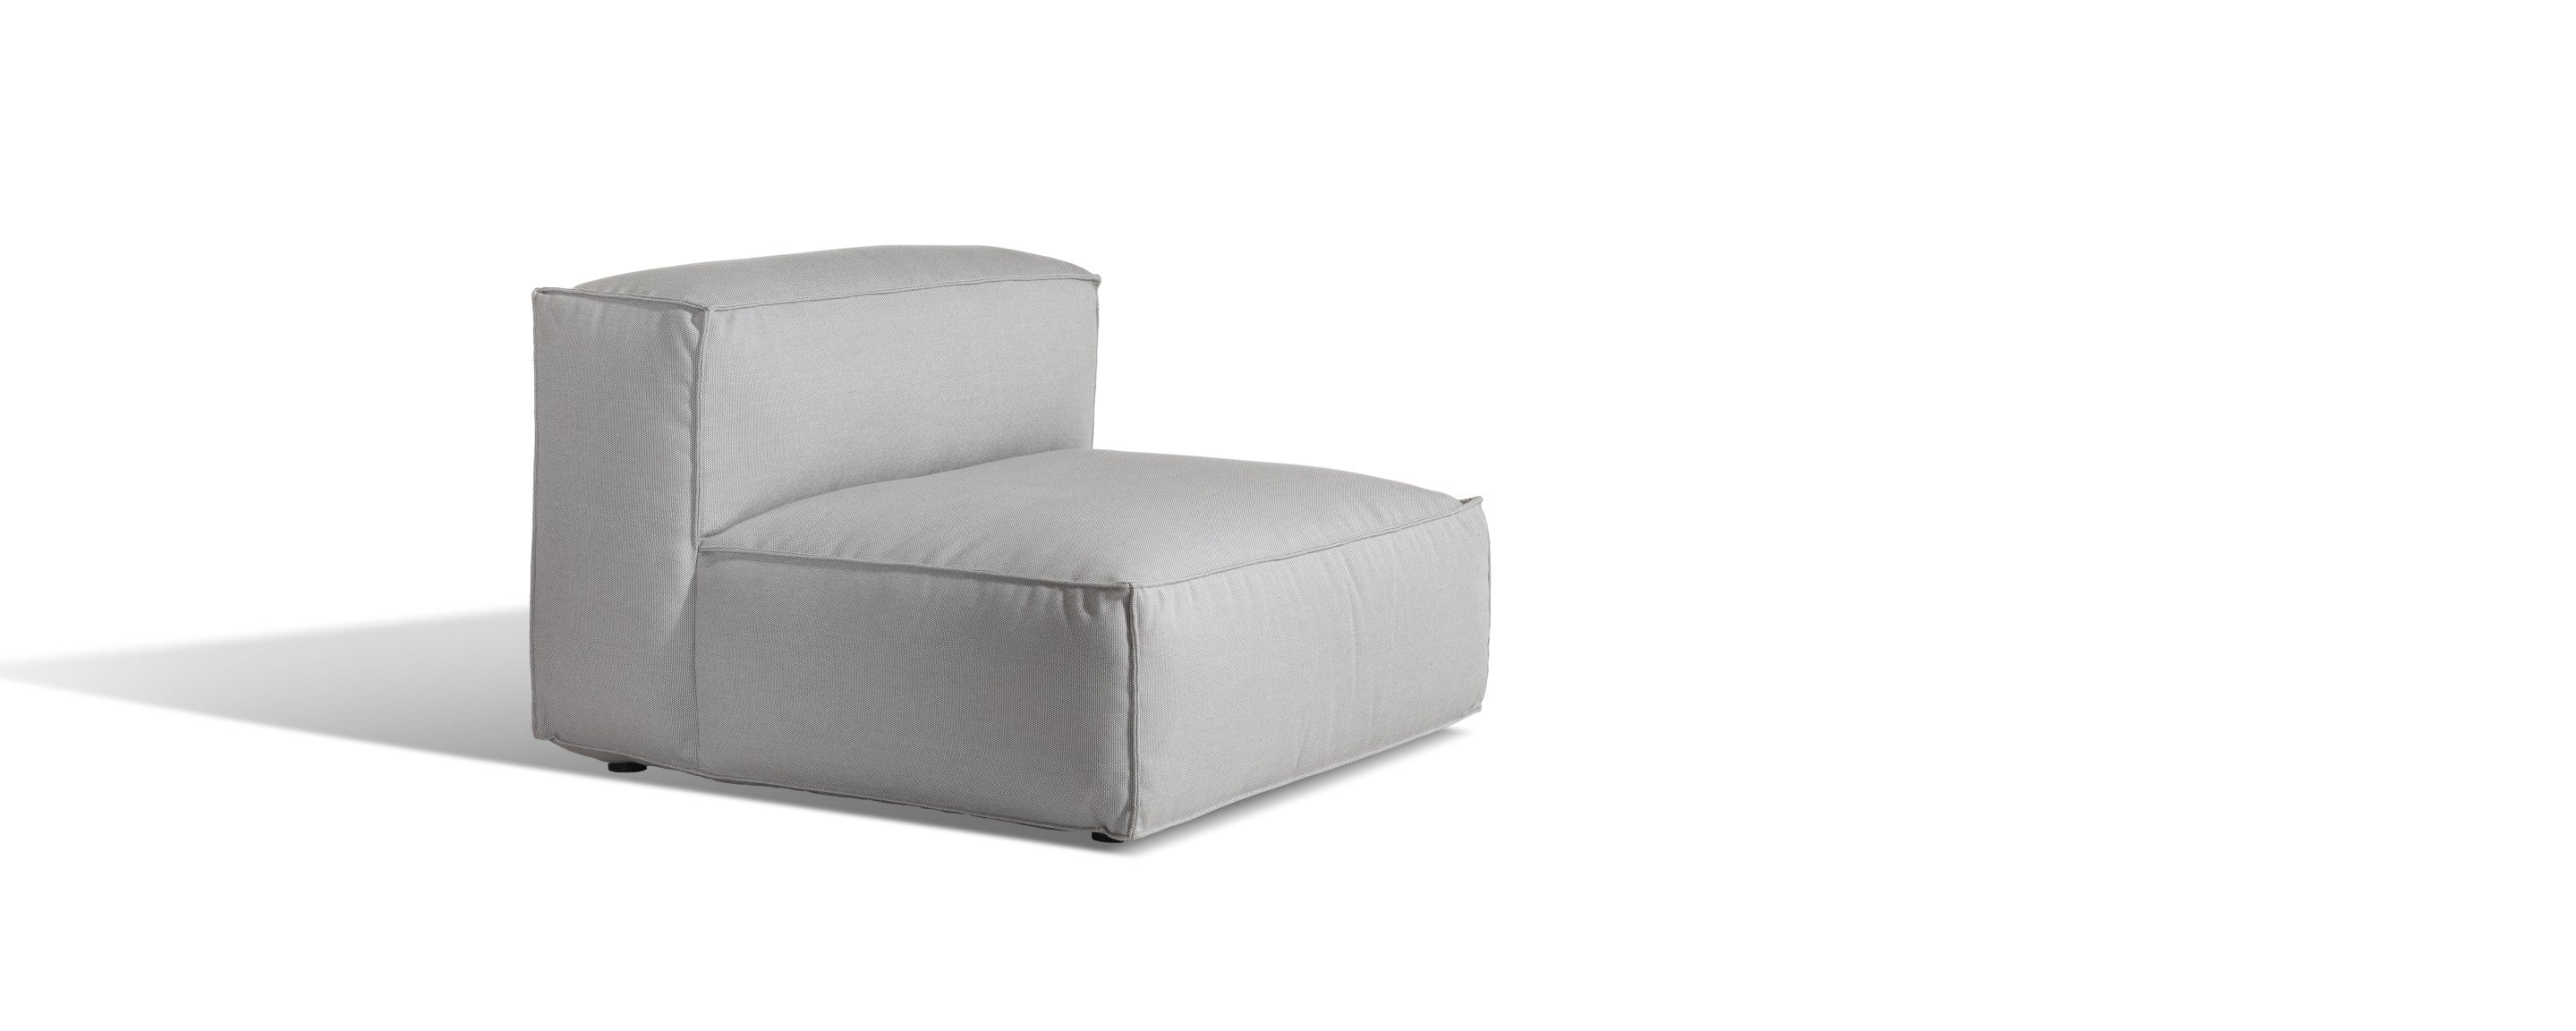 asker sectional sofa mid section